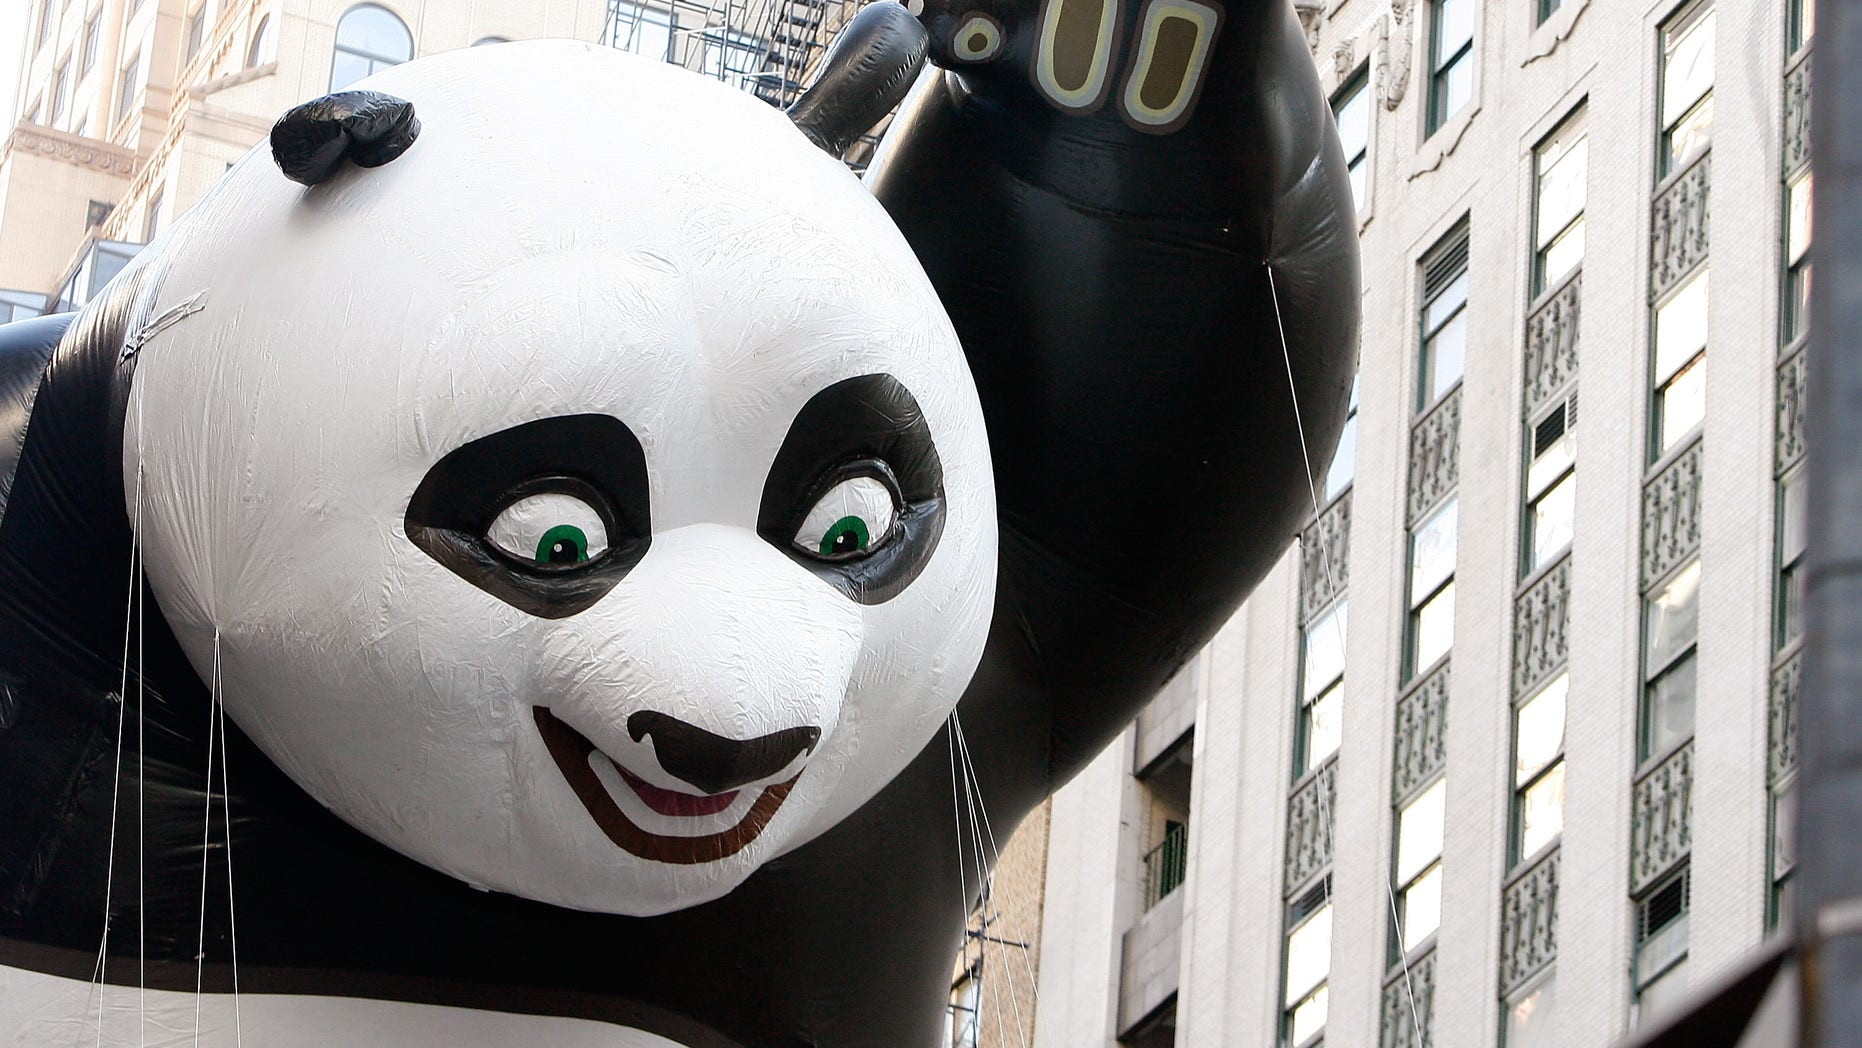 NEW YORK, NY - NOVEMBER 22:  The Kung Fu Panda balloon is seen during the 86th Annual Macy's Thanksgiving Day Parade on November 22, 2012 in New York City.  (Photo by Mike Lawrie/Getty Images)